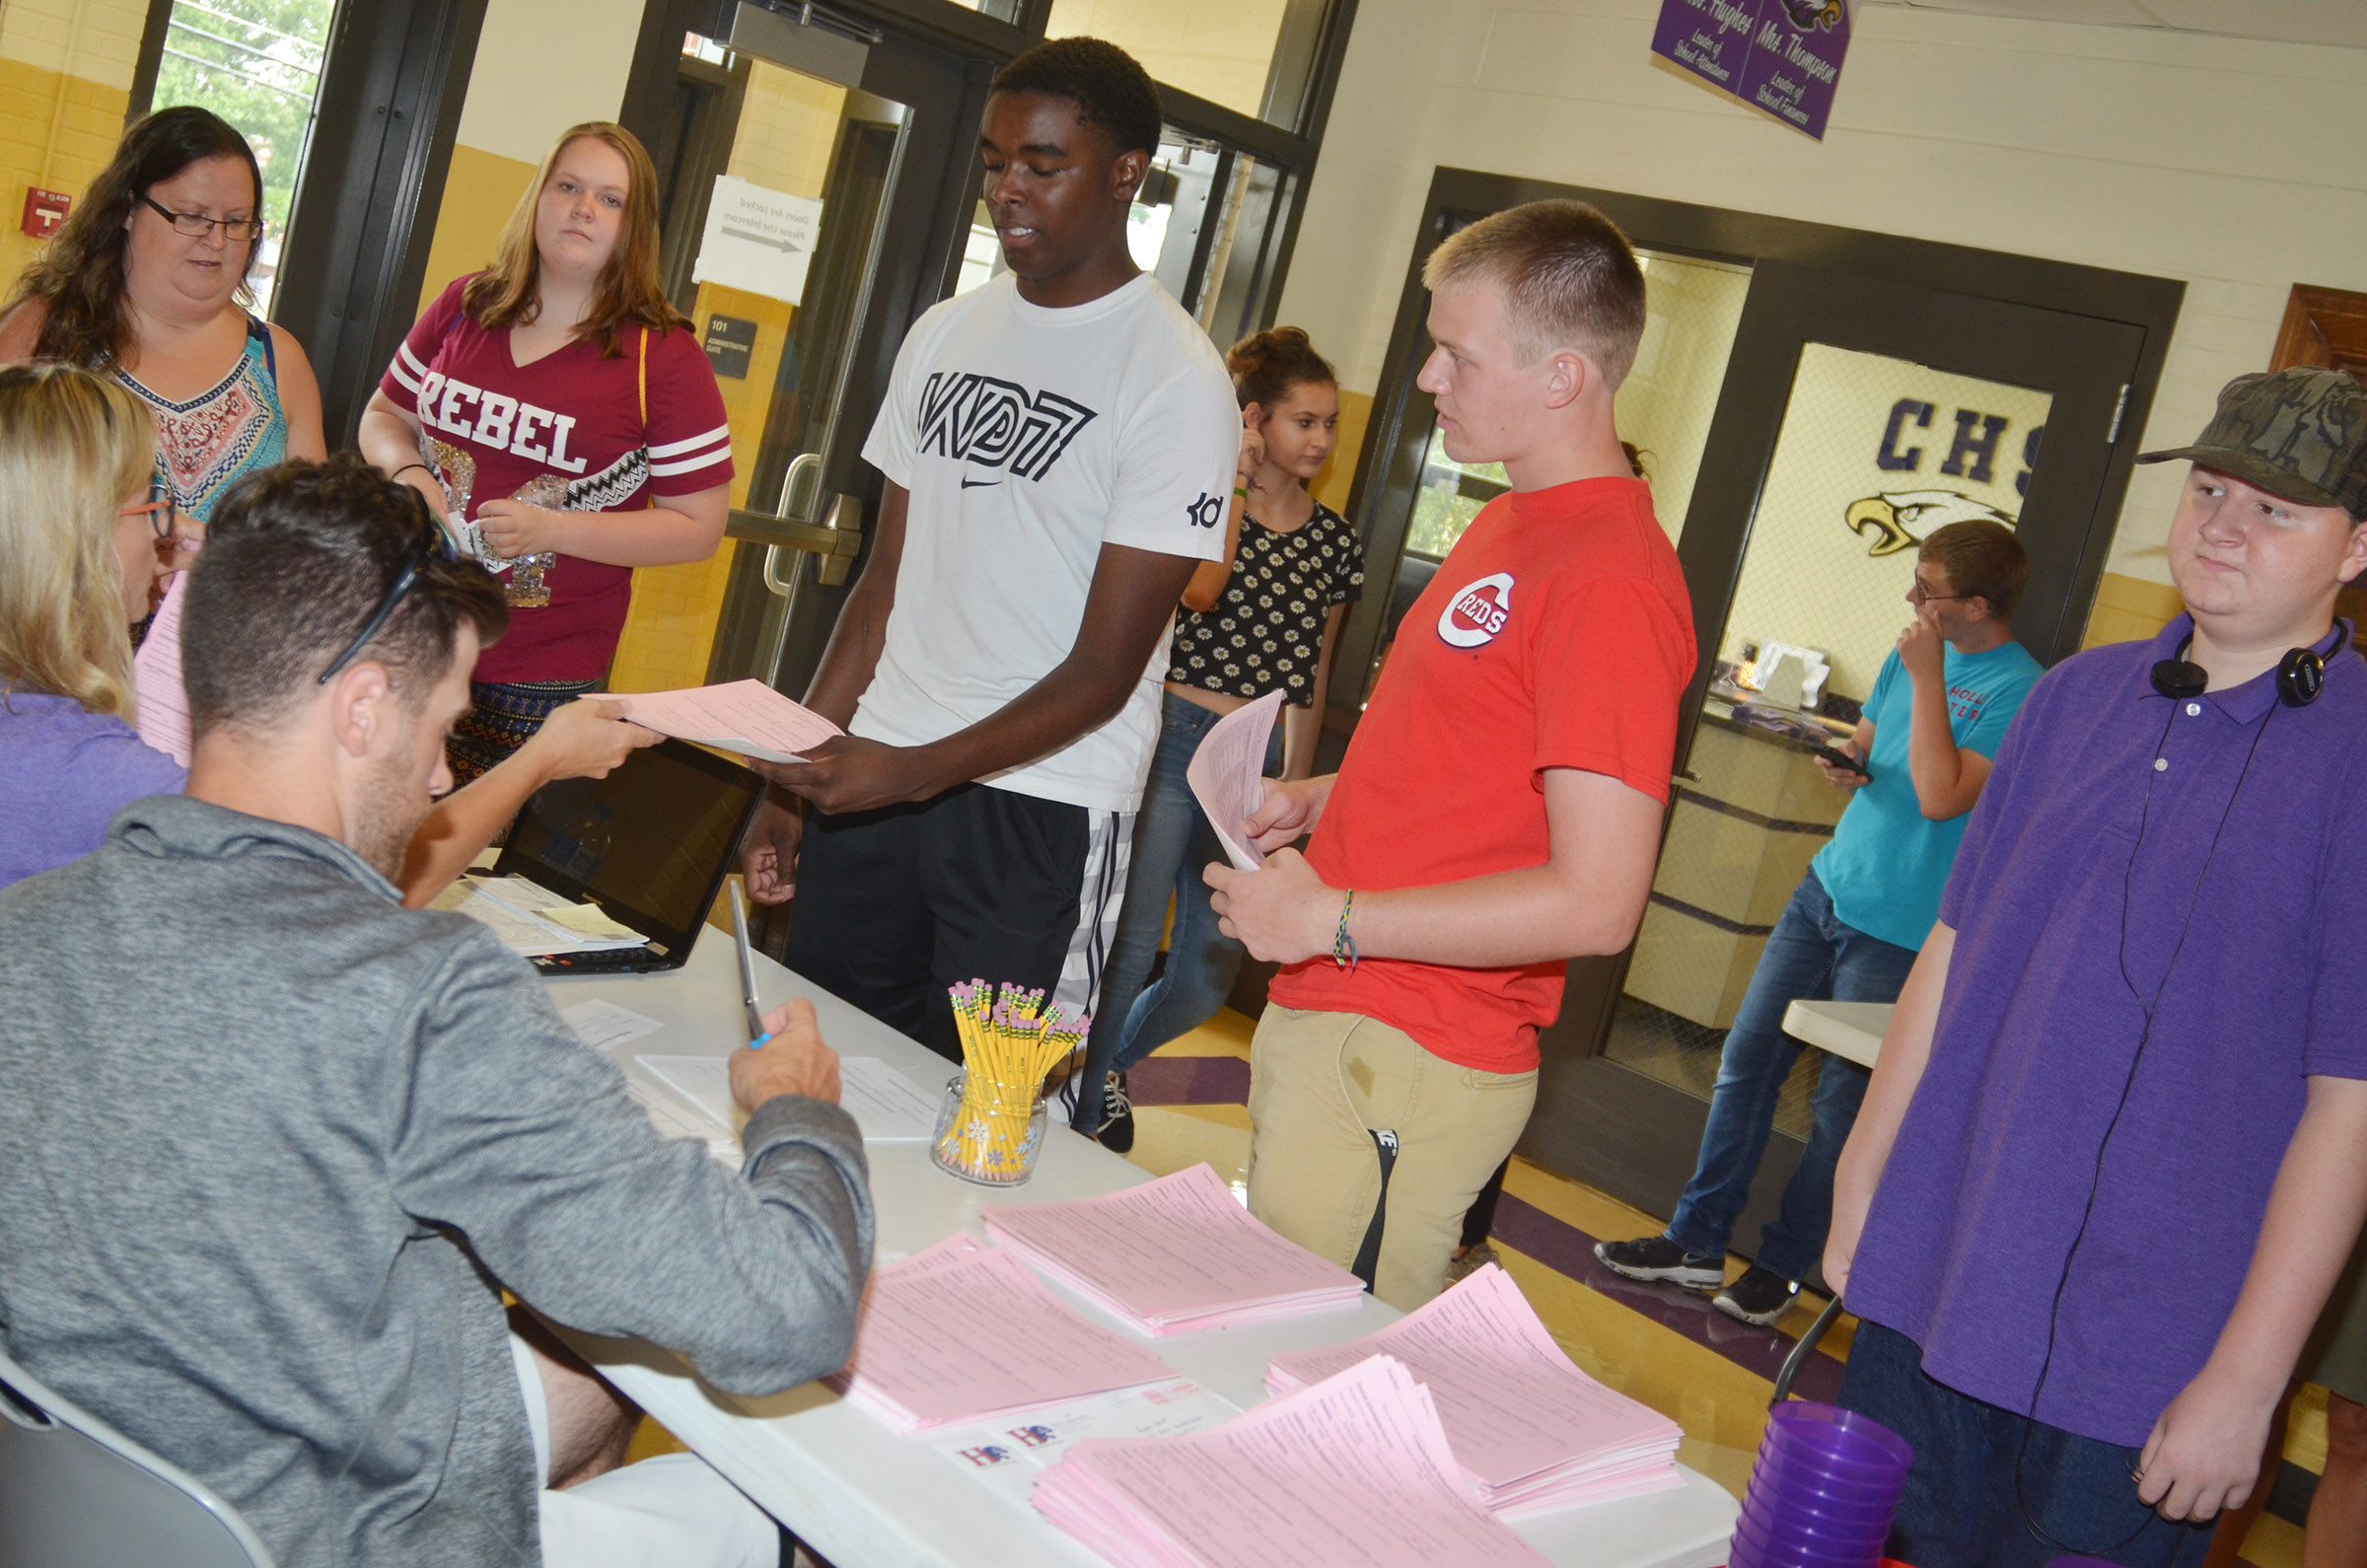 CHS seniors Chanson Atkinson and Wyatt Houk, center, receive their schedules.